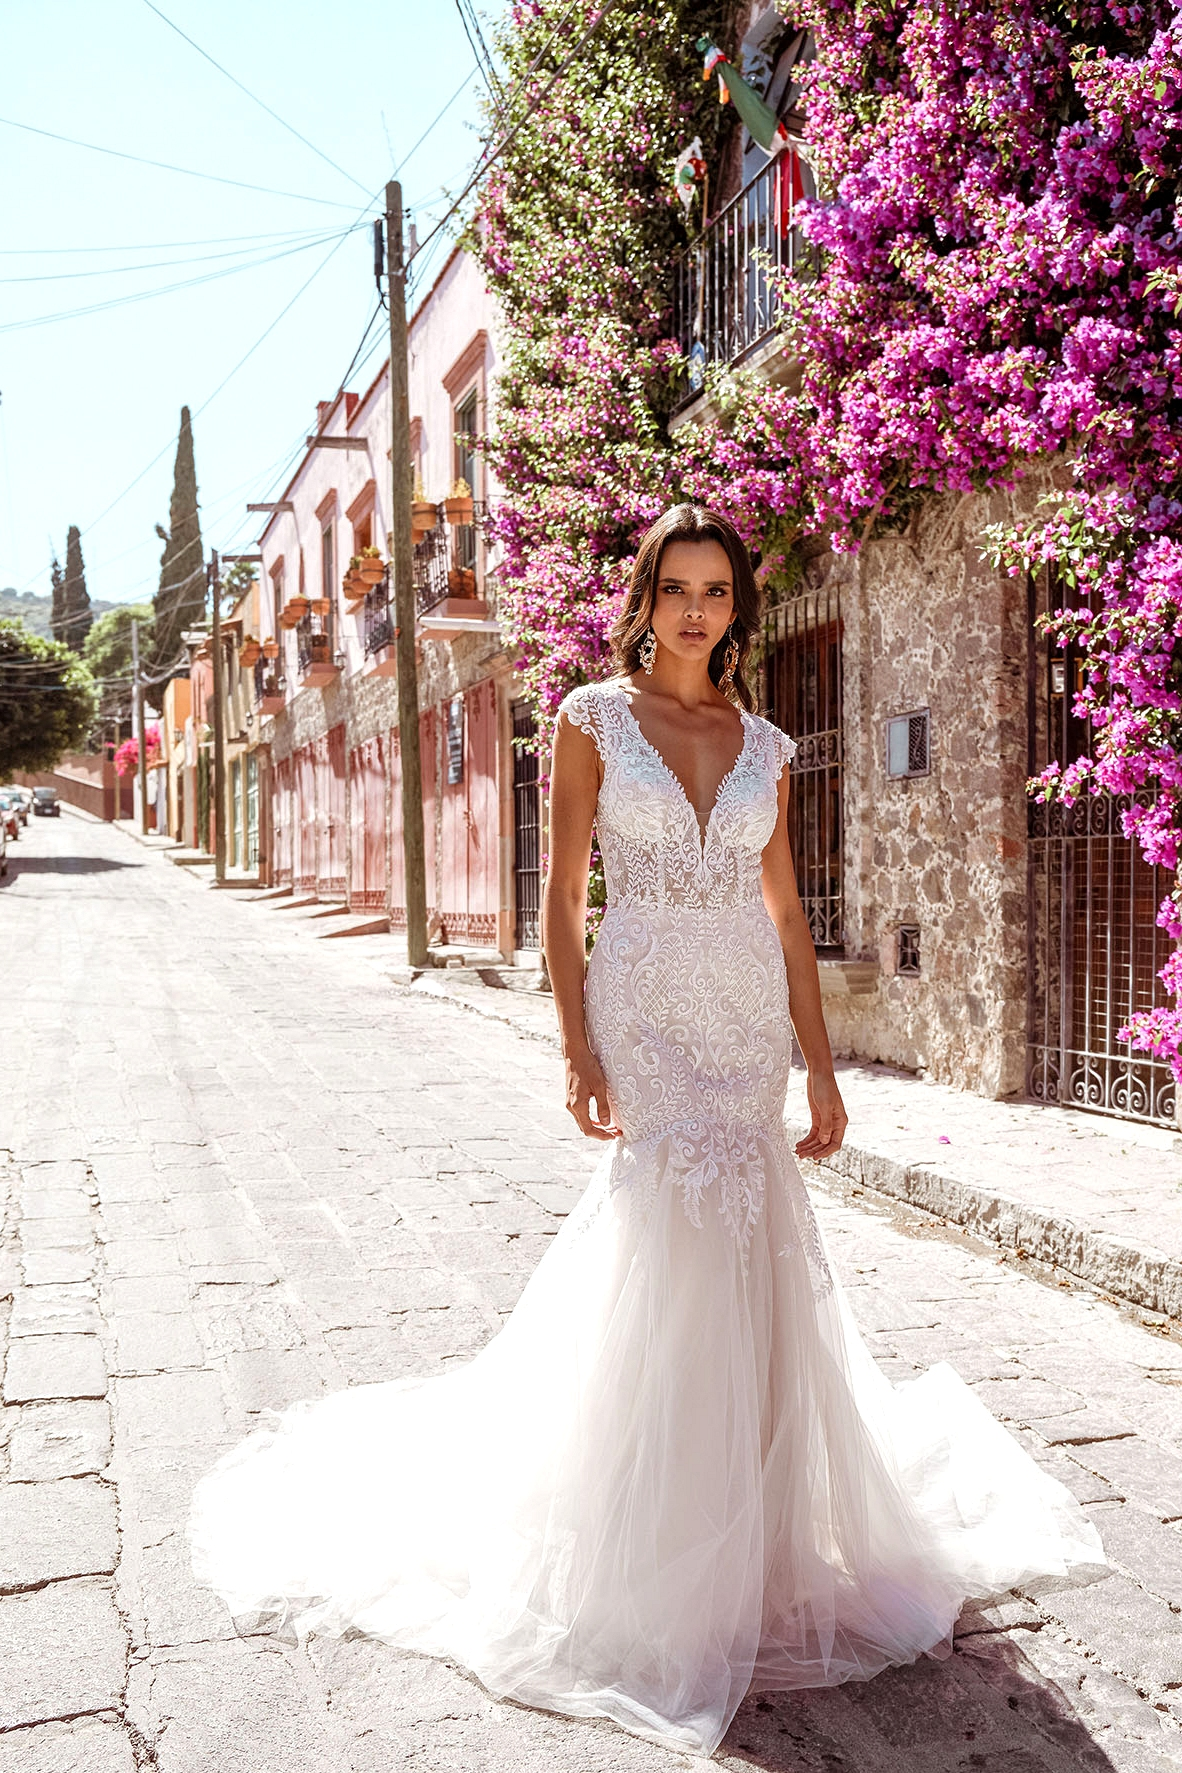 Introducing the Tara Lauren 2020 Collection: romantic, fresh, elevated bohemian wedding dresses.